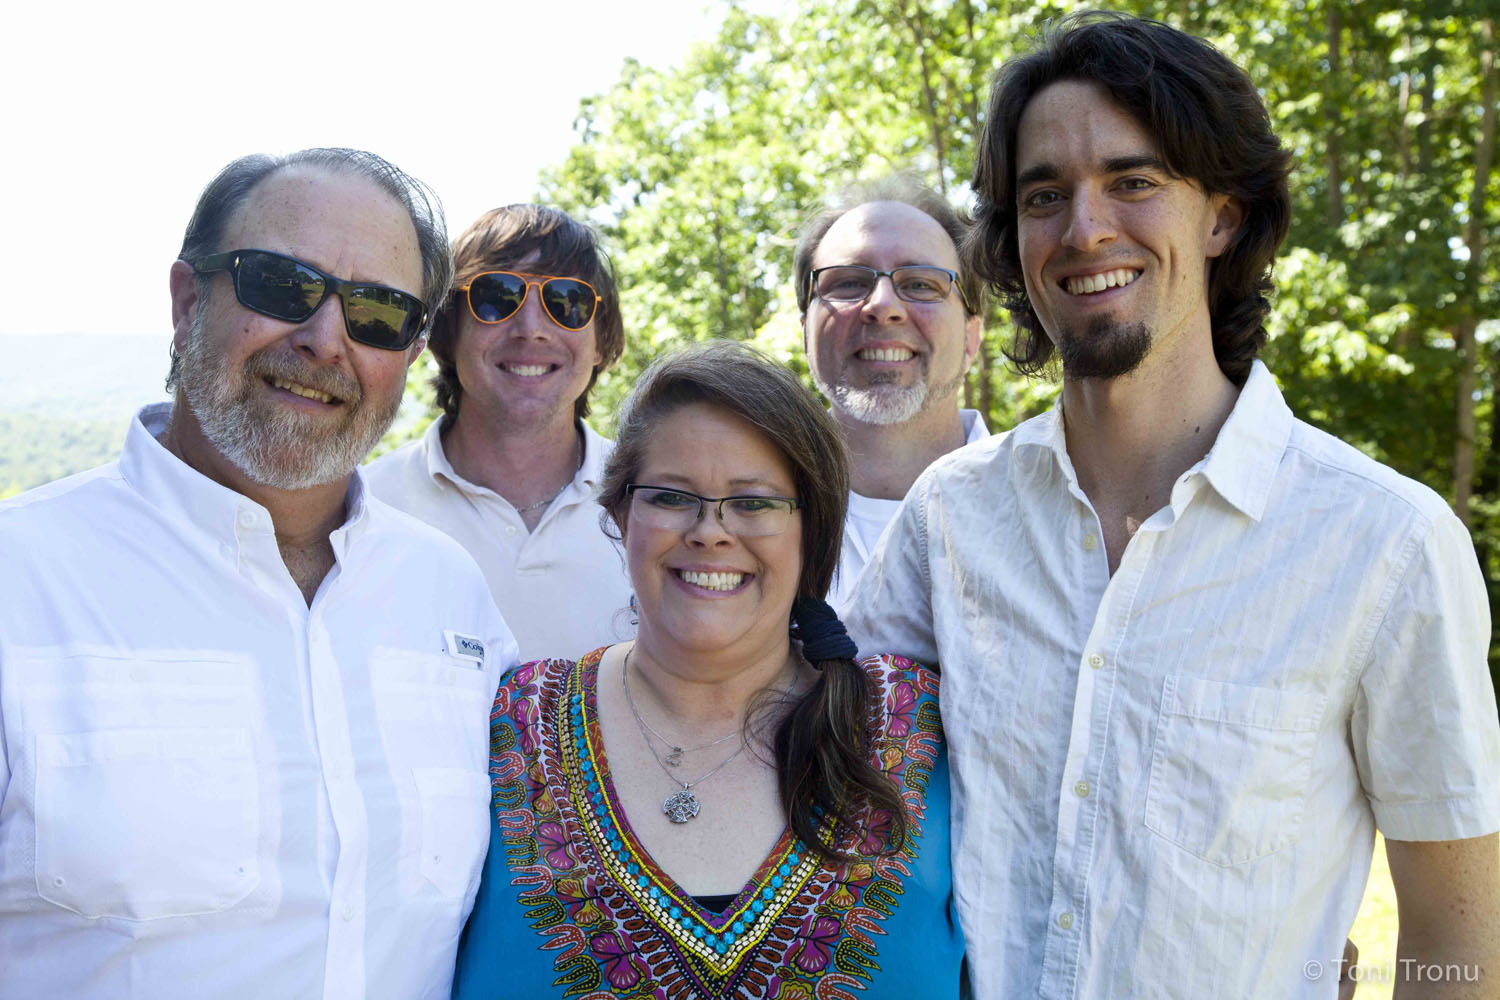 Group-photo-band-Andrea-Templon-and-Friends.jpg